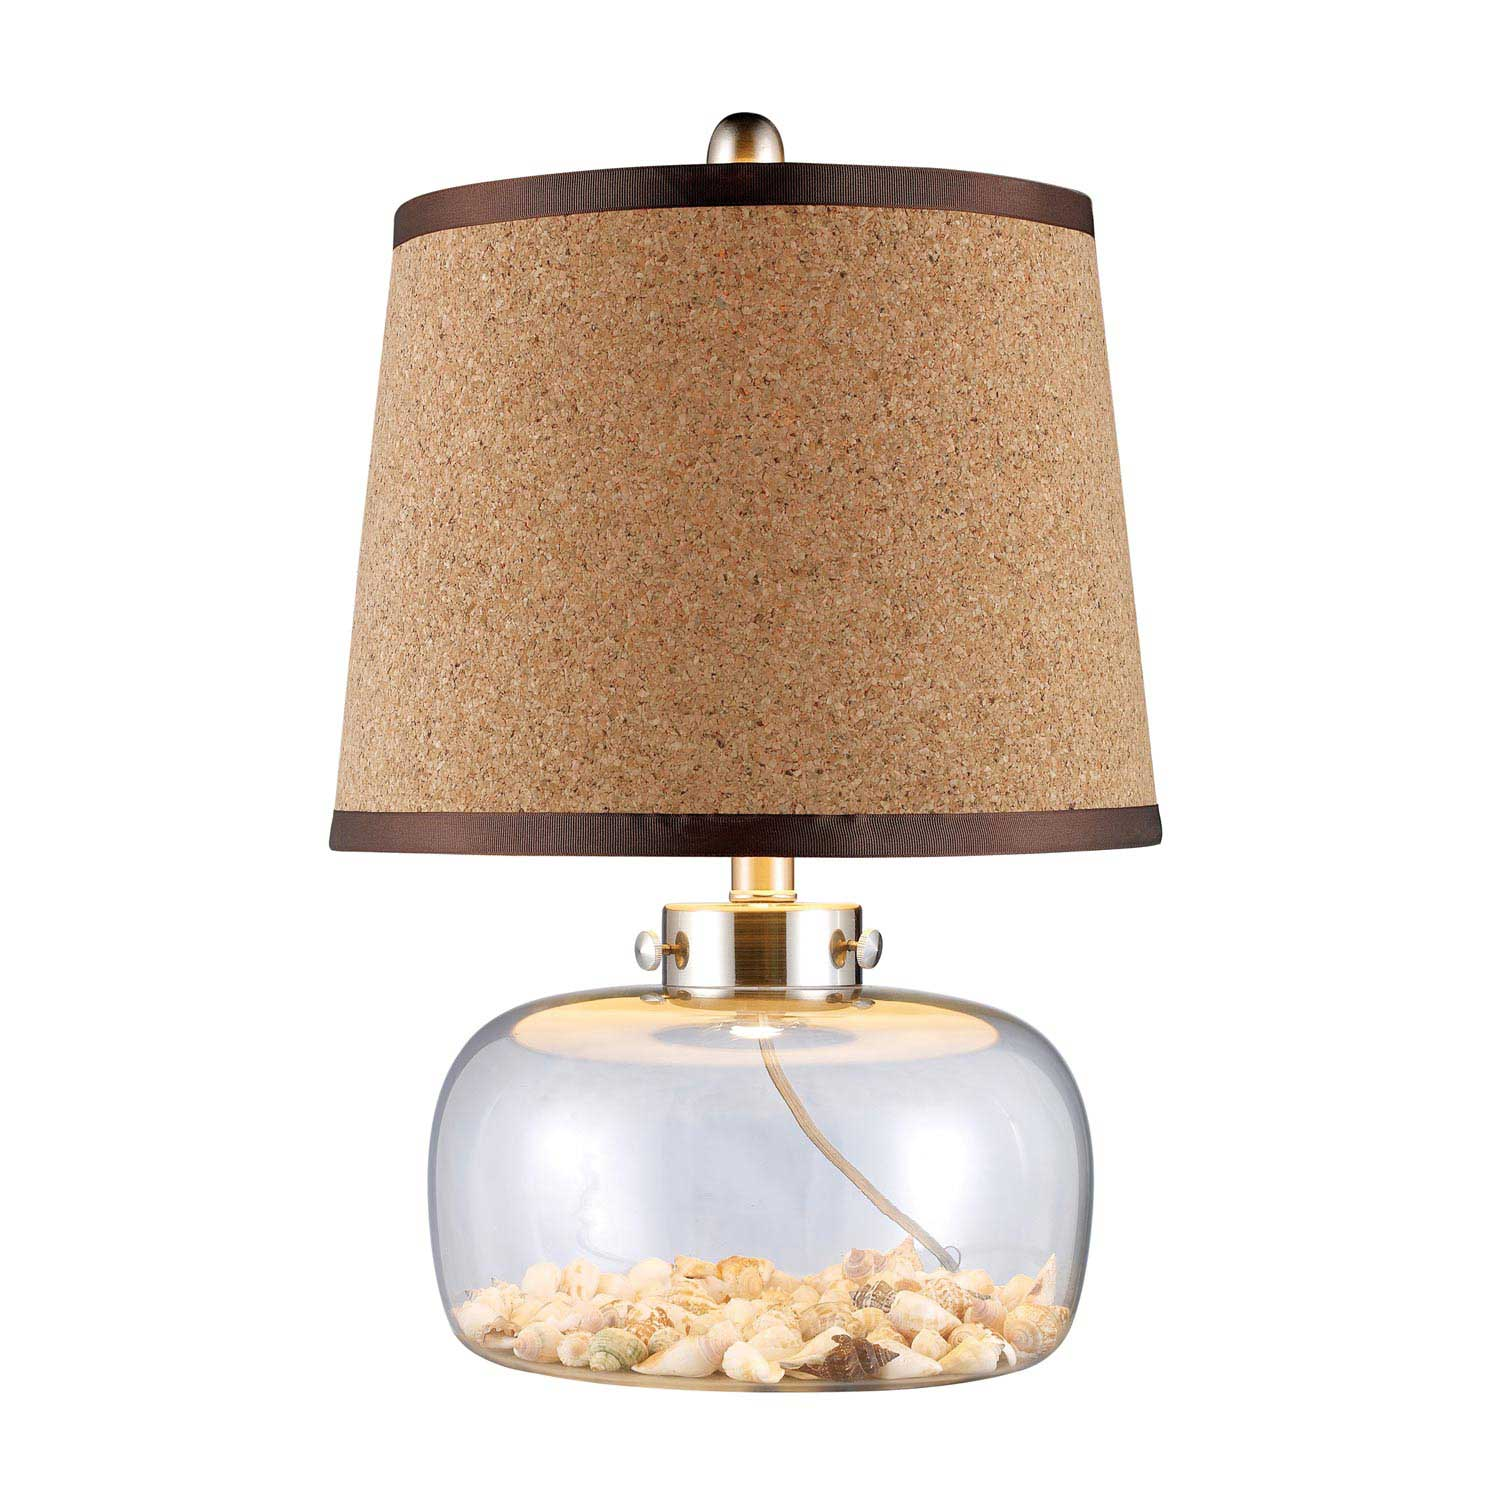 Elk Lighting D1981 Margate Table Lamp - Clear Glass and Shells